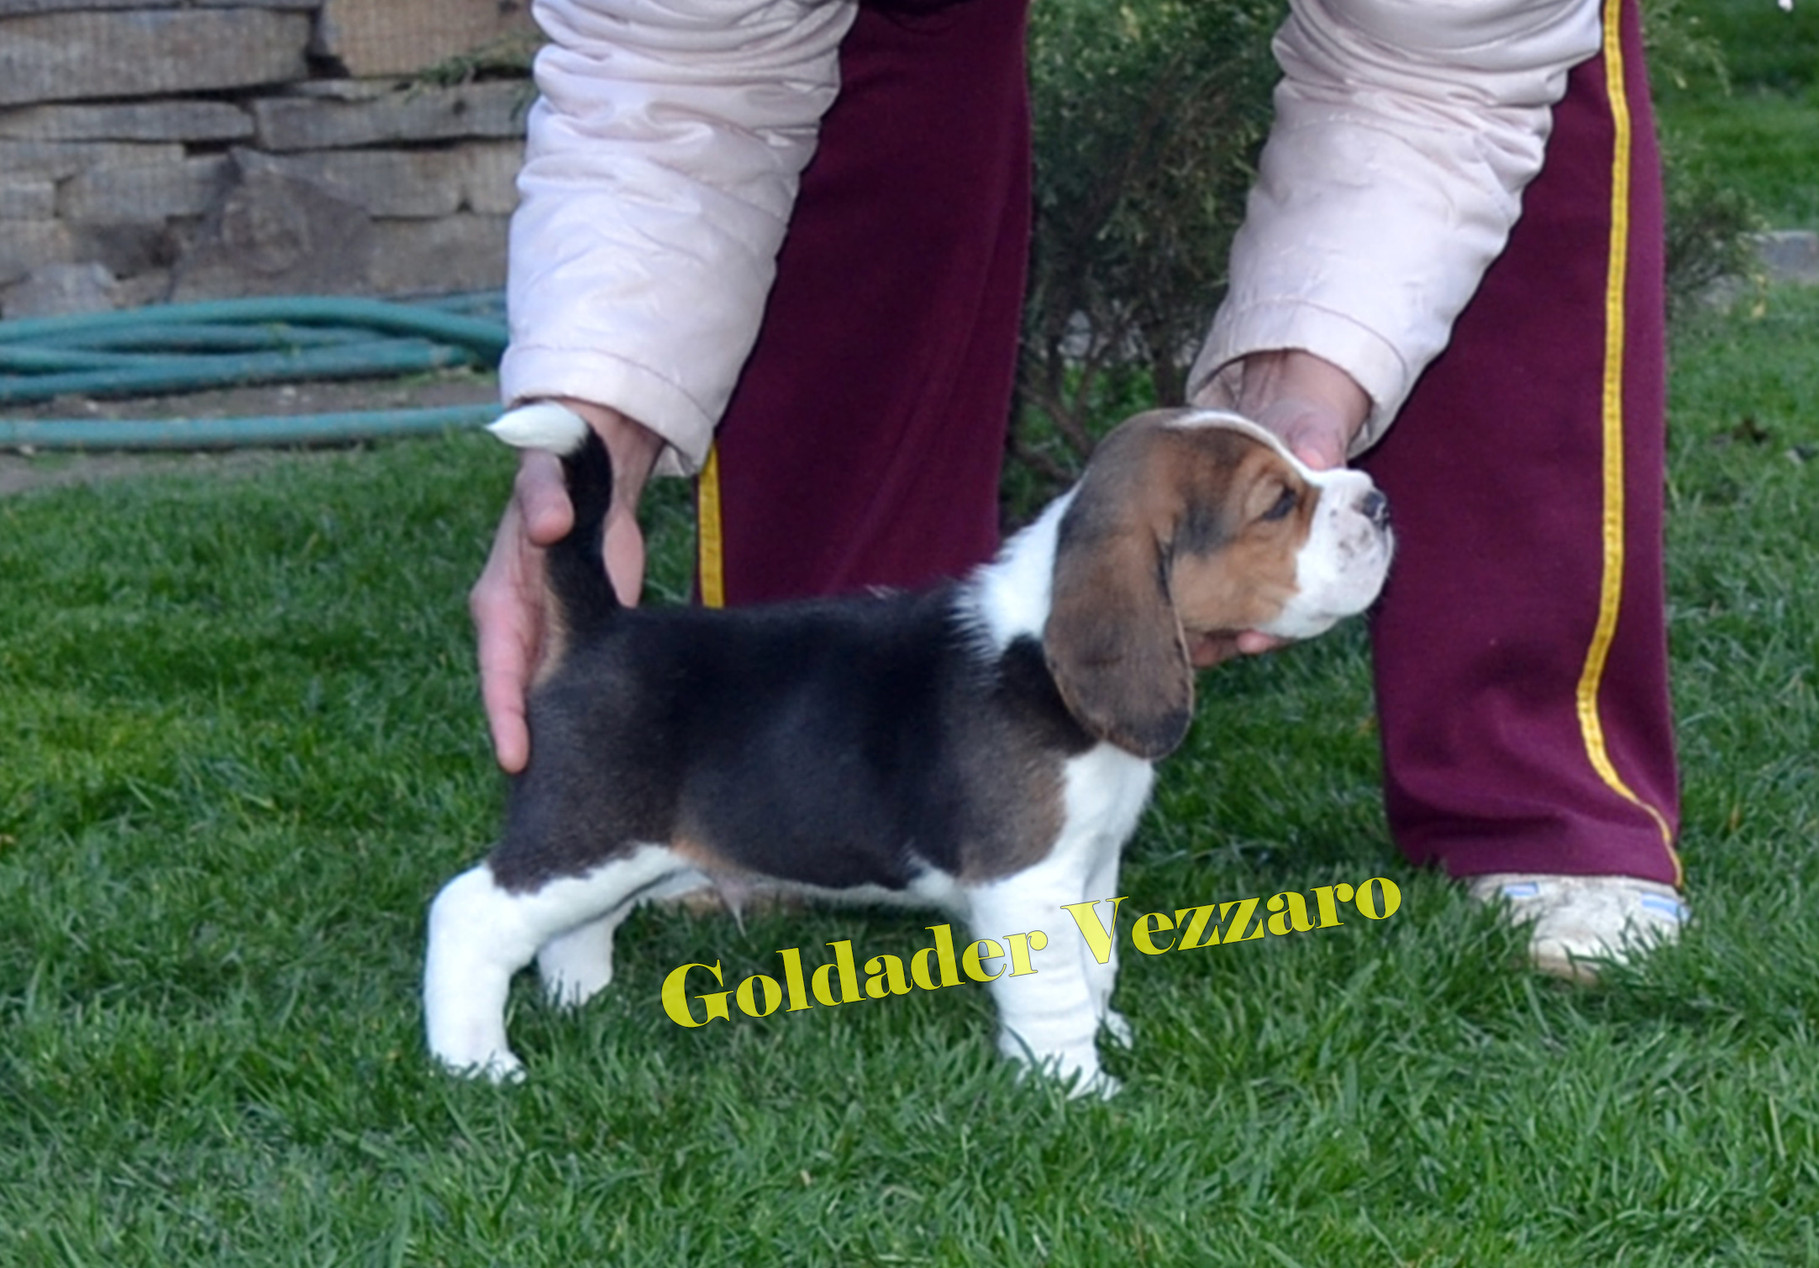 Goldader Vezzaro, 38 days old